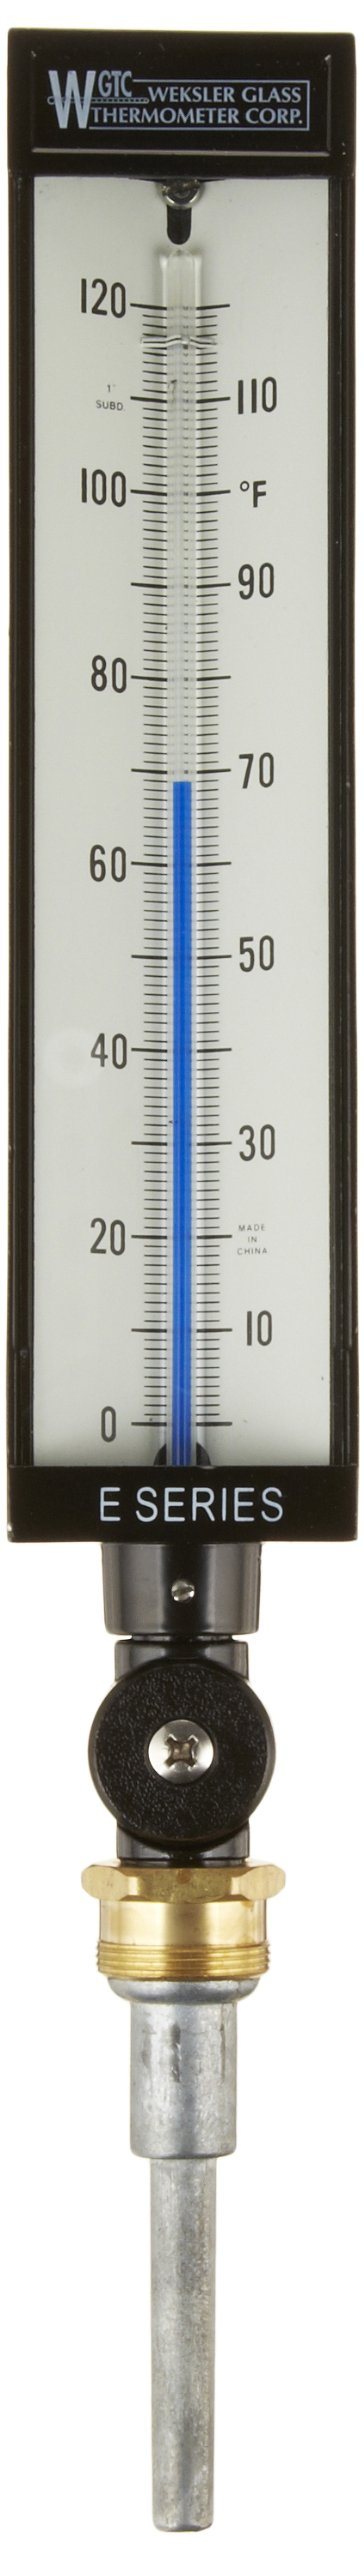 PIC Gauge AS5H9EA-C 9'' Scale, 3-1/2'' Stem Length, 0/120° F Temperature Range Eco-Red Spirit Filled Industrial Thermometer with Aluminum Case, and Adjustable Angle